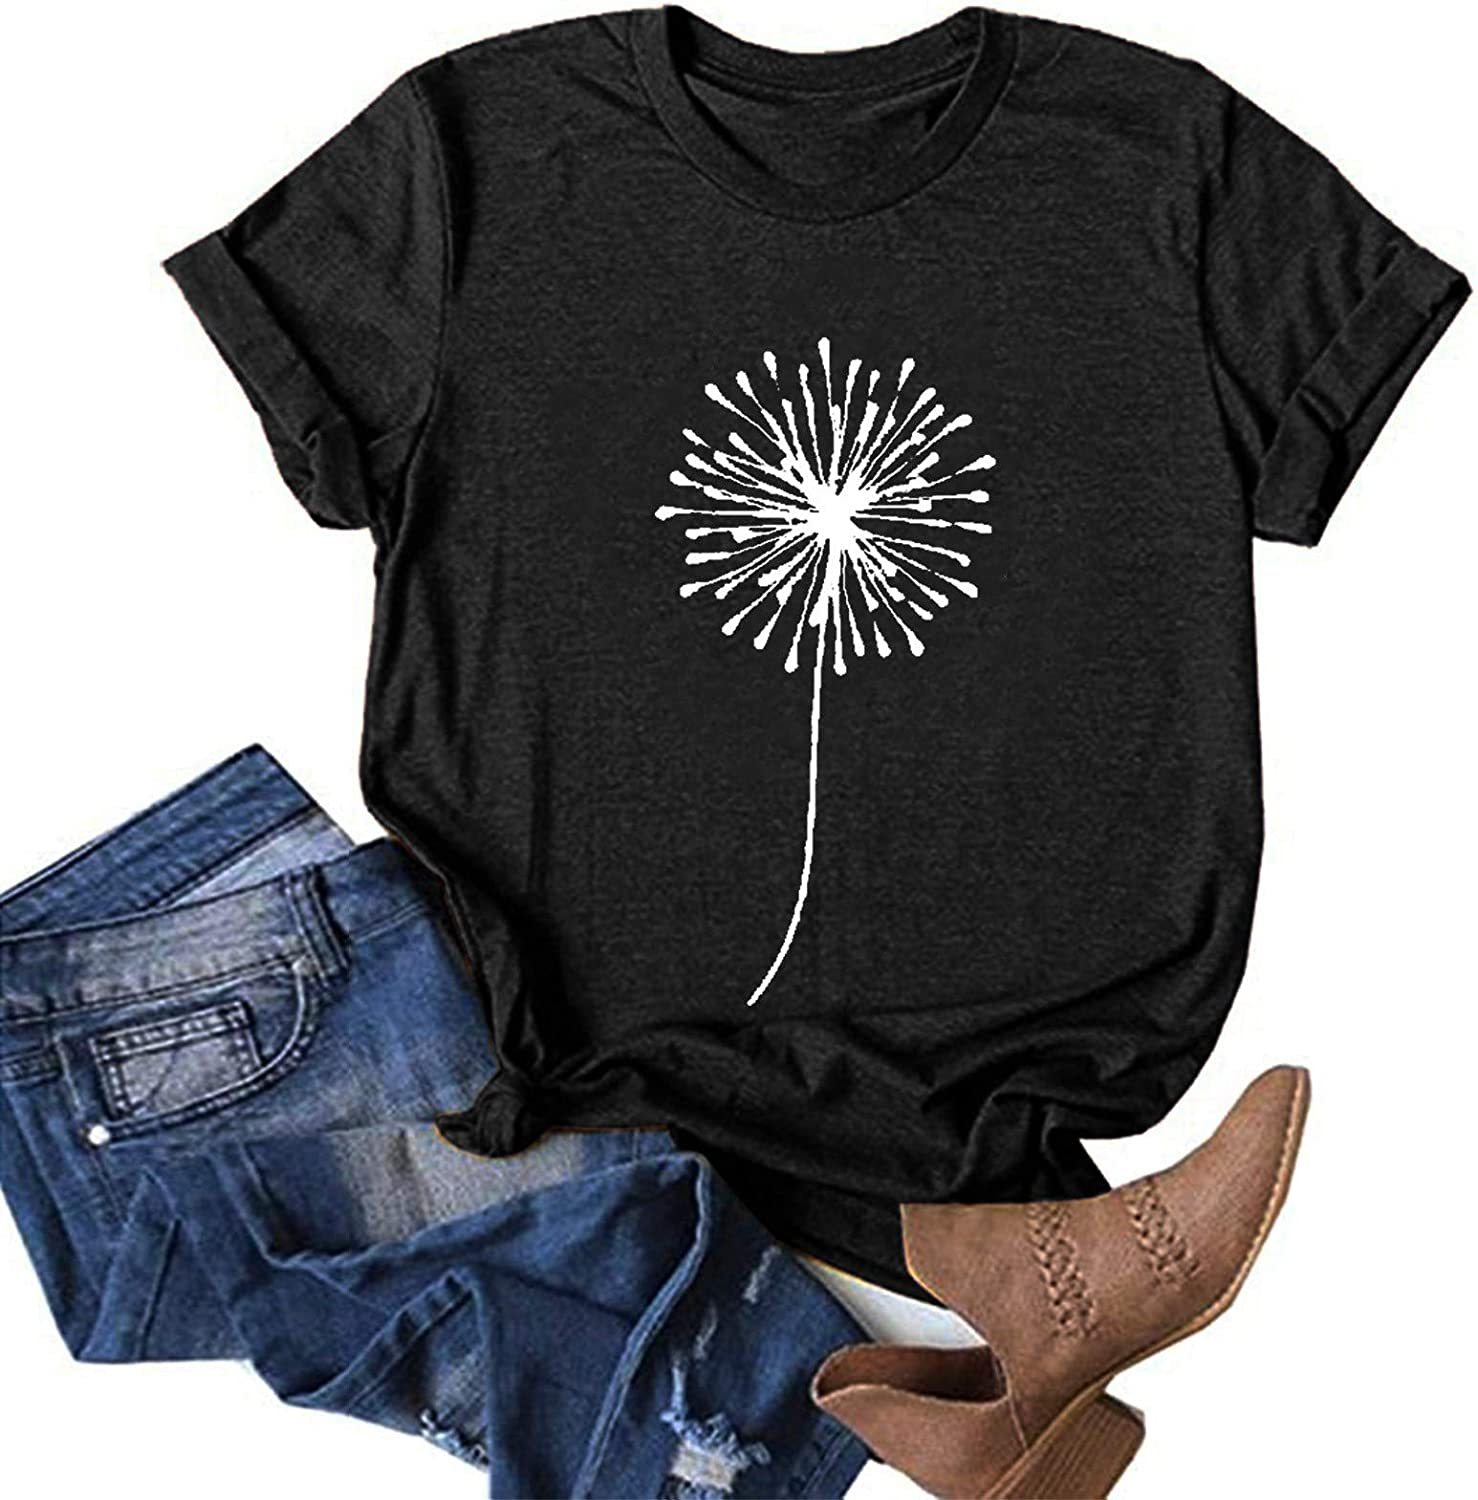 naioewe Shirts for Women Sexy Shirts for Women Fashion Round Neck Plus Size Sunflower Print Tee Shirt Casual Short Sleeve T-Shirt Top Blouses Orange